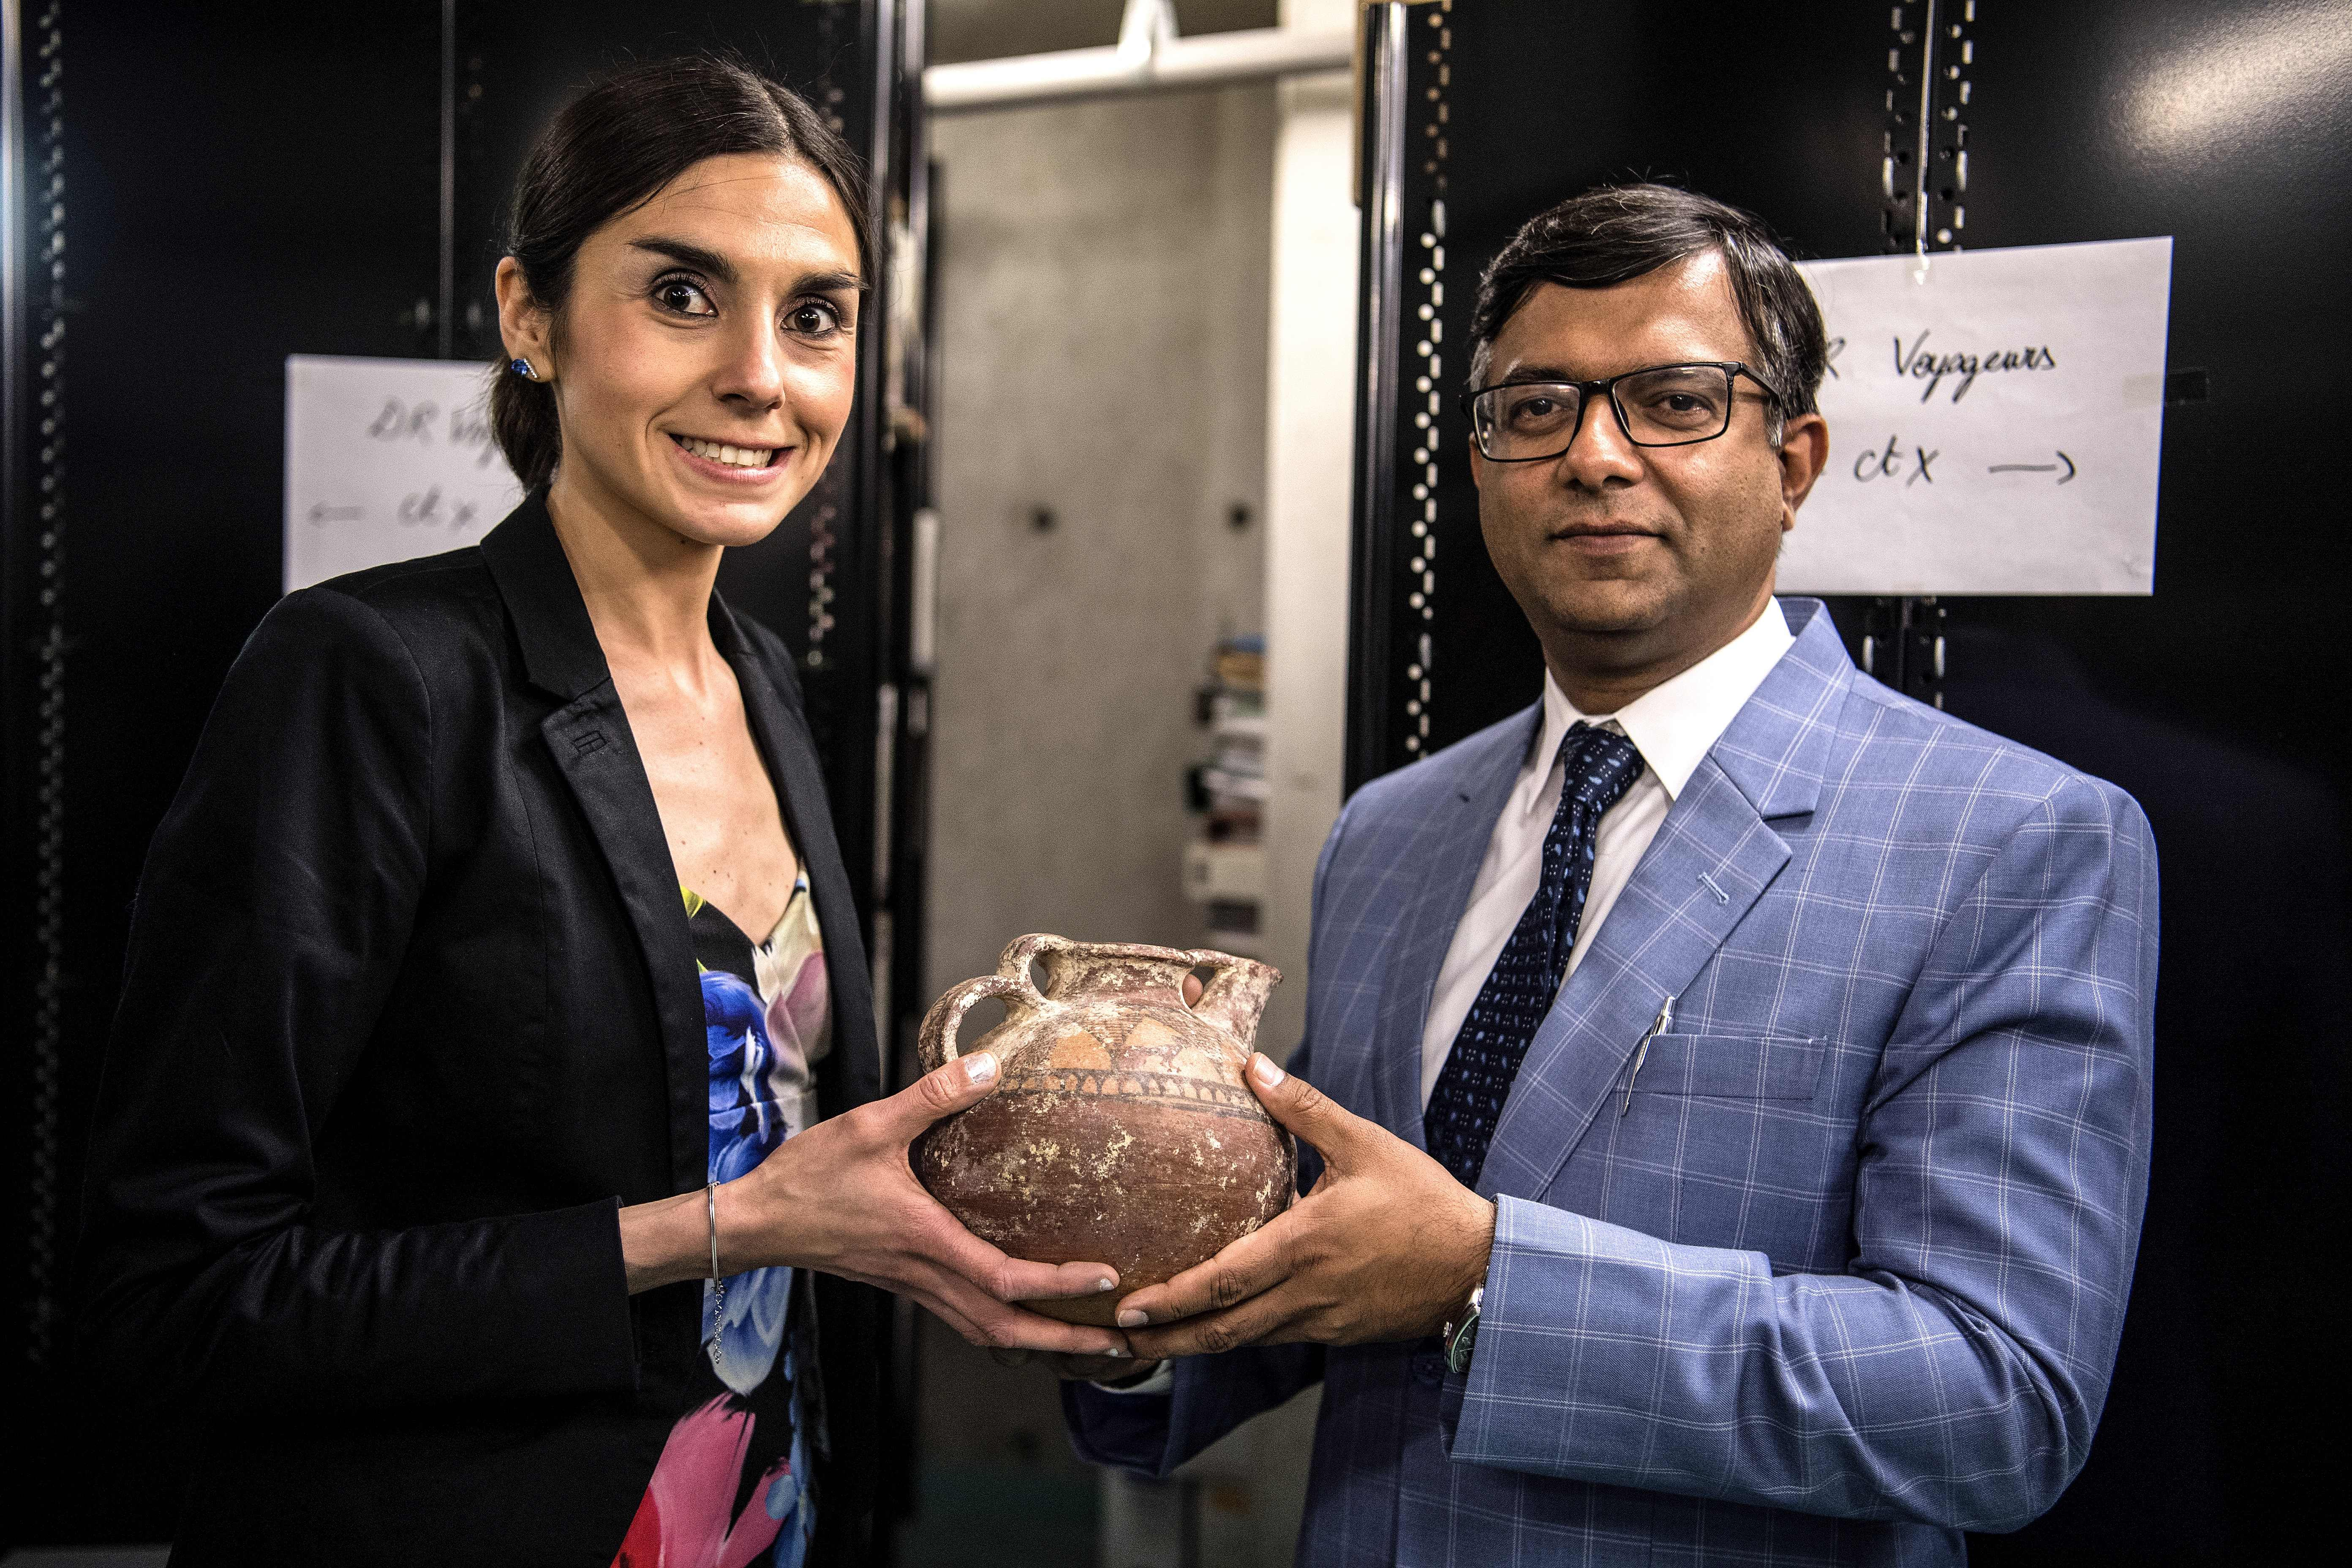 French Police Intercepted Some Suspicious Pots at the Airport. The Investigation Led to the Return of a Cache of Pakistani Artifacts